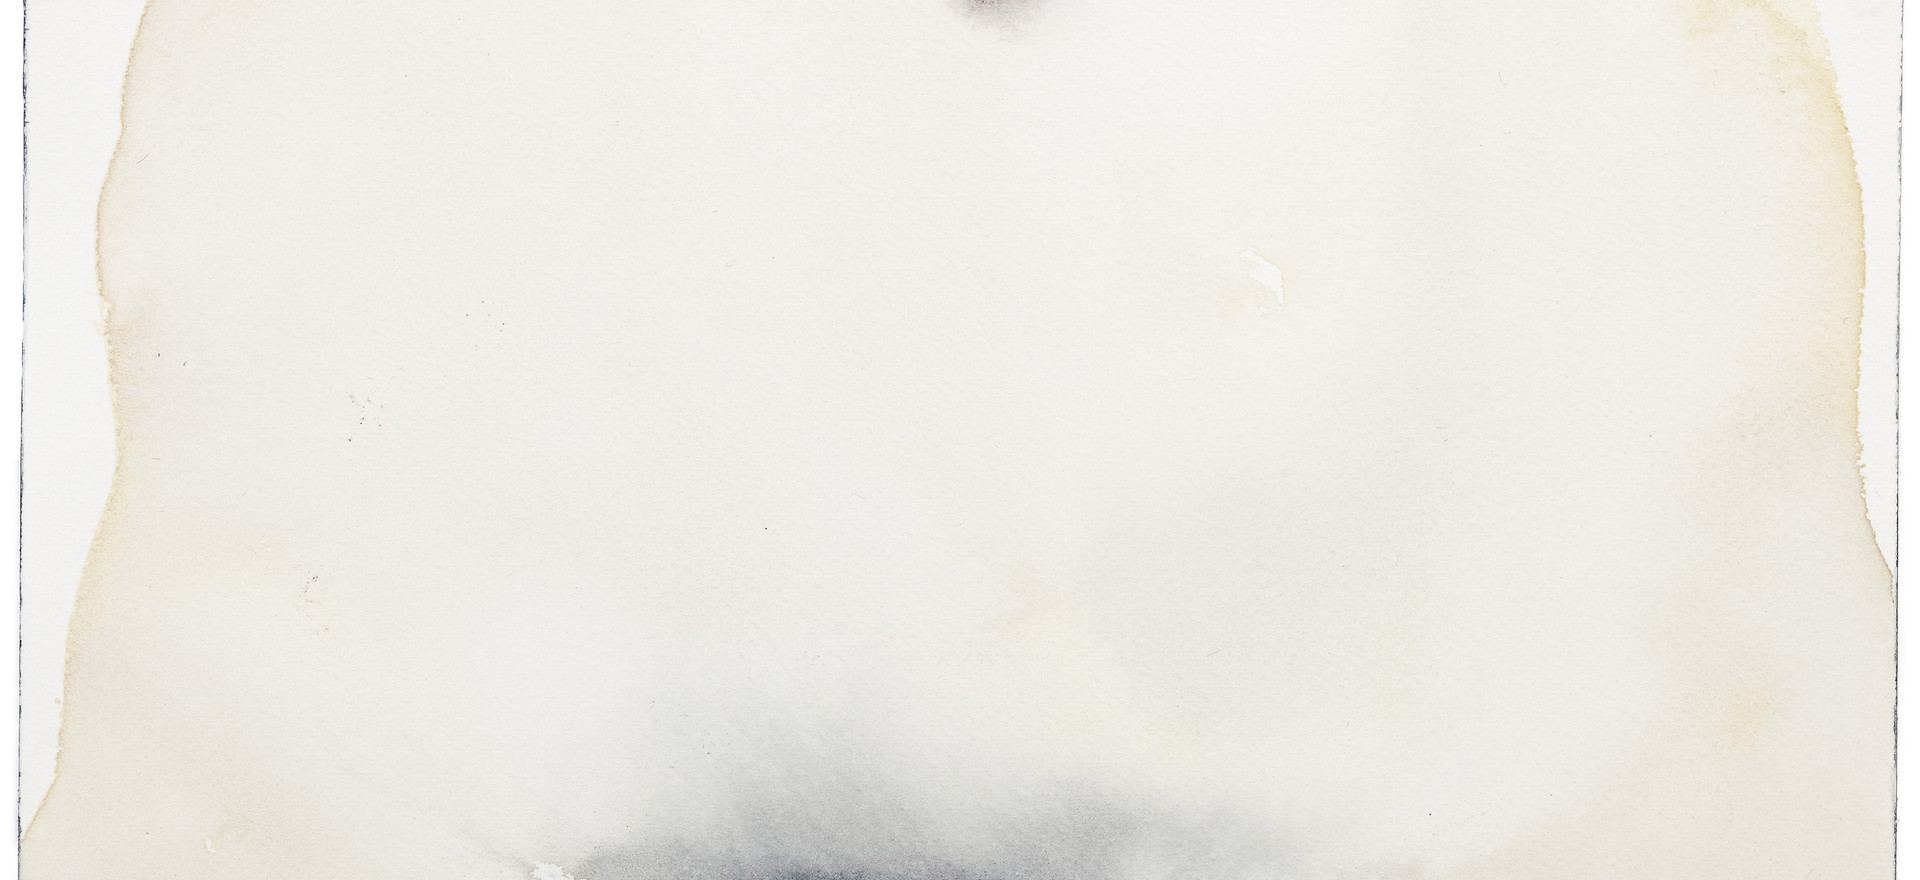 'Navel Series', 2012, watercolour on paper, 15 x 30 cm